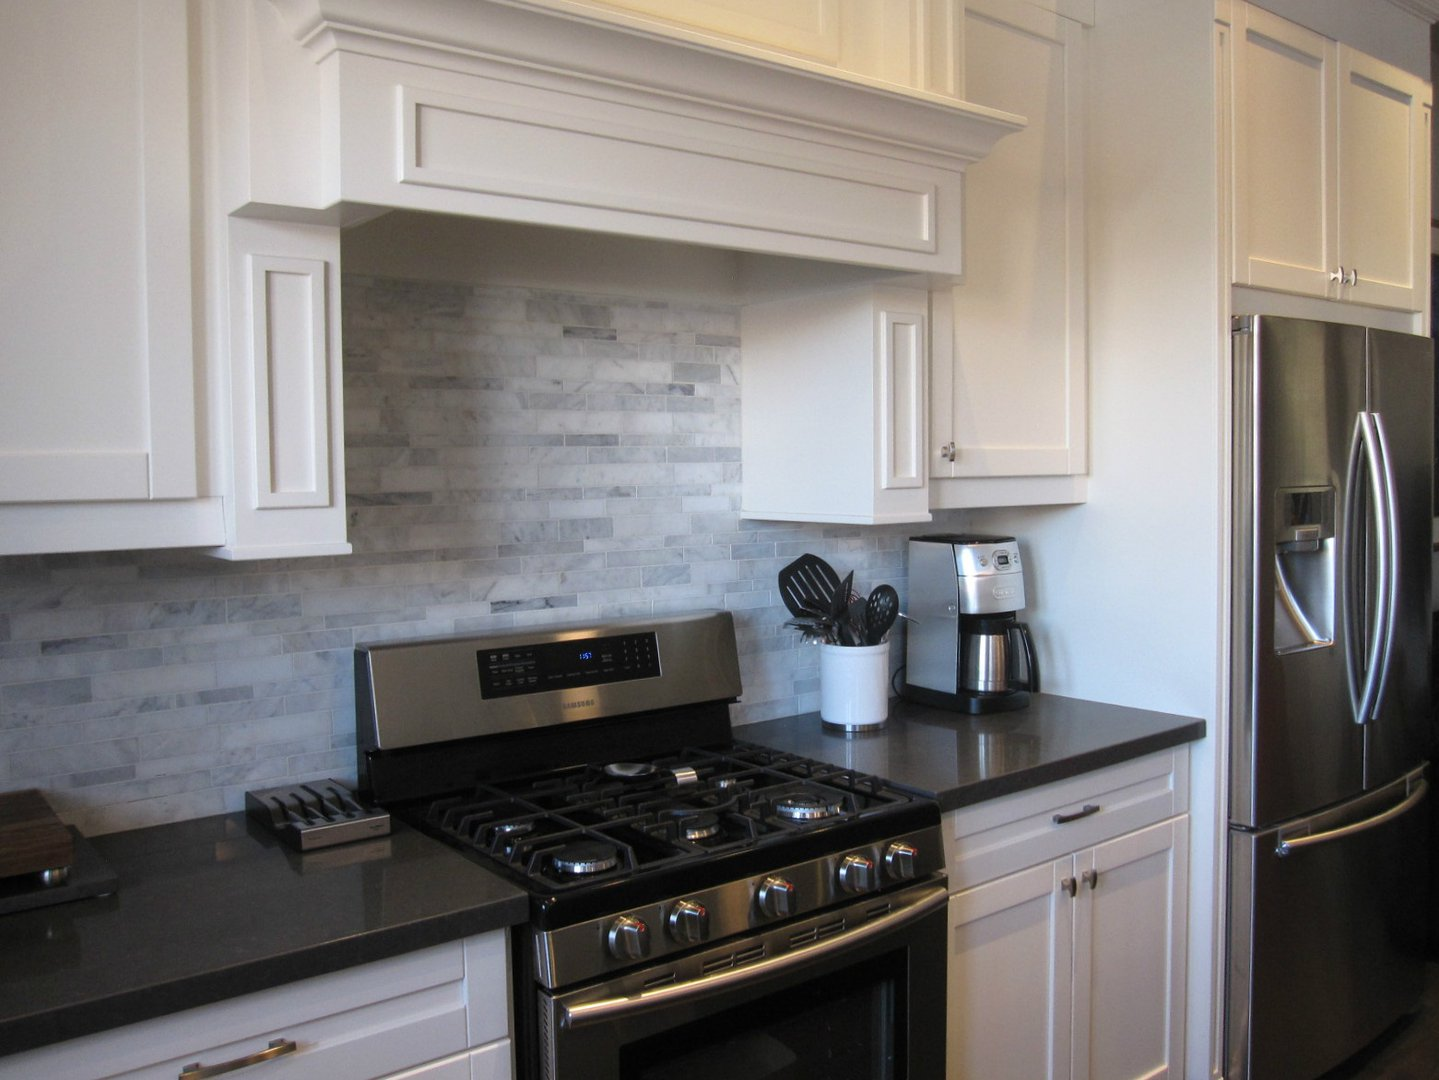 House for rent at 18 Algoma St, Etobicoke, ON. This is the kitchen with stainless steel.